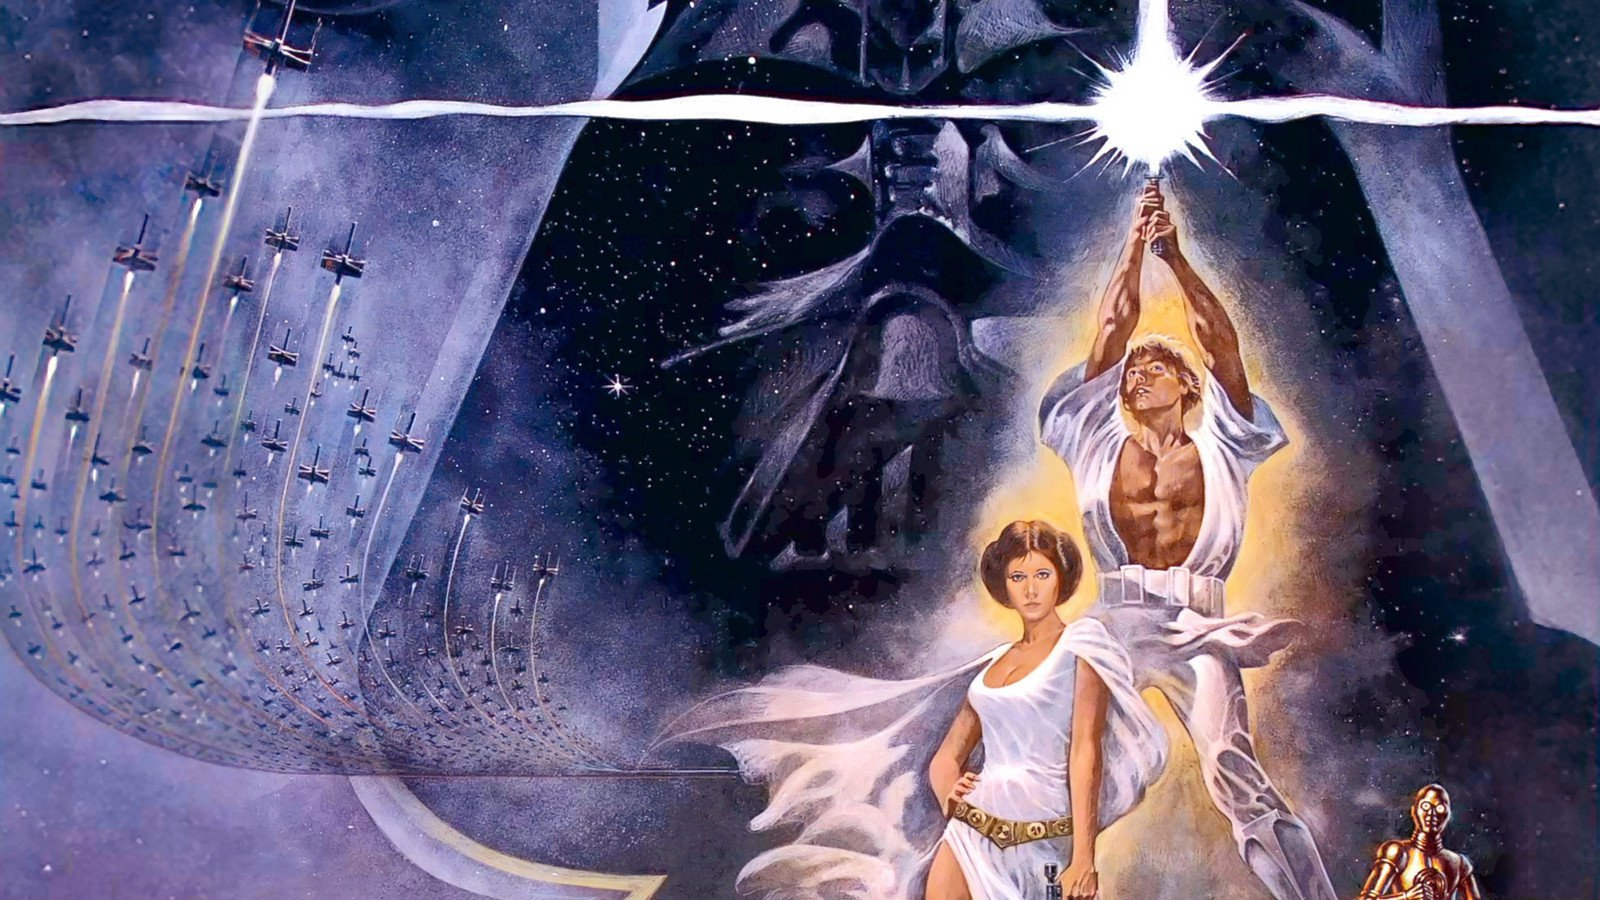 Star Wars Episode Iv A New Hope Wallpapers Movie Hq Star Wars Episode Iv A New Hope Pictures 4k Wallpapers 2019